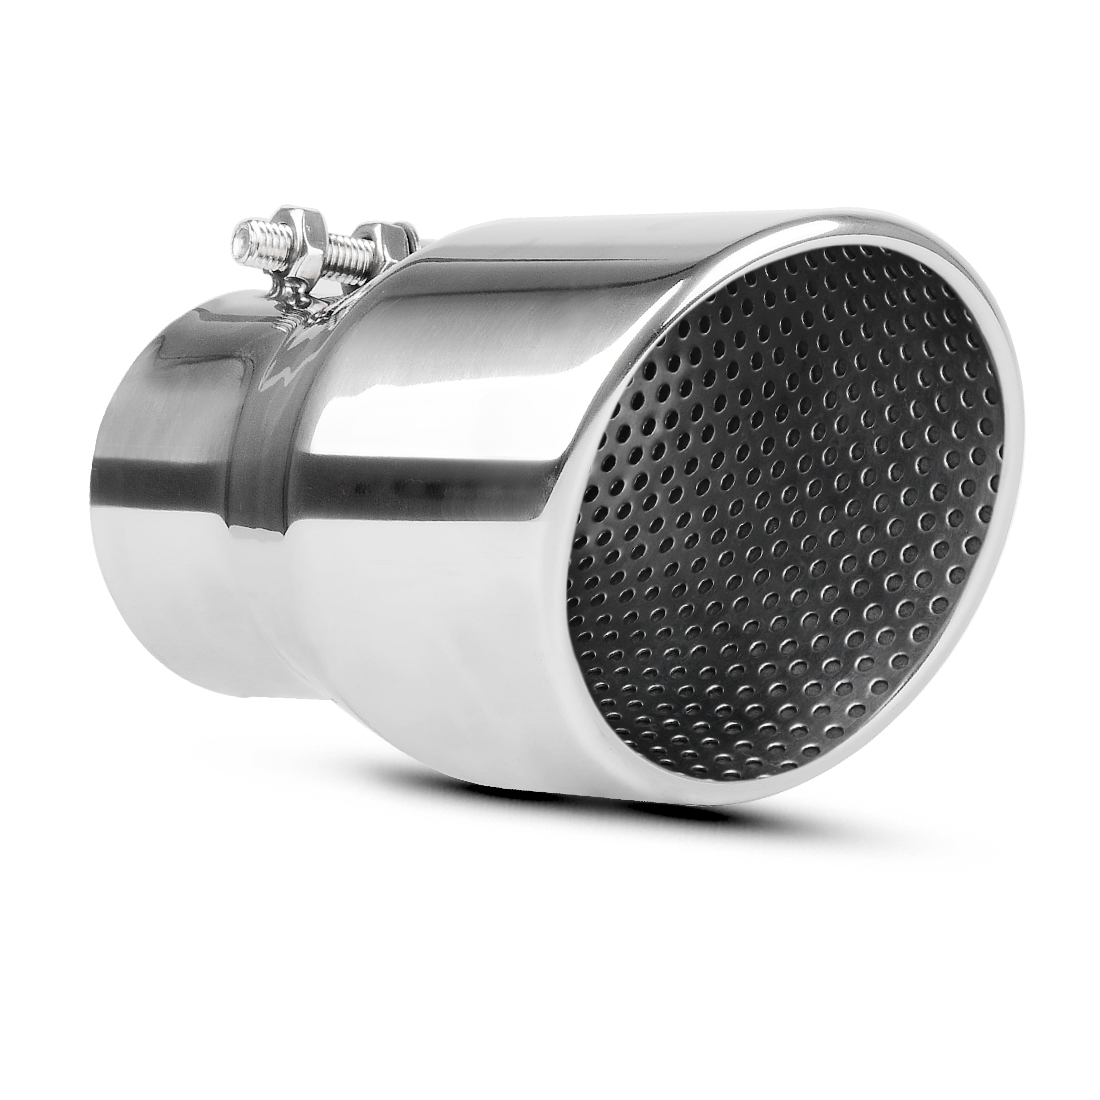 muffler exhaust tip 2 5 inch inlet x 3 5 inch outlet x 6 inch long chrome polished angle cut stainless steel tailpipe walmart com